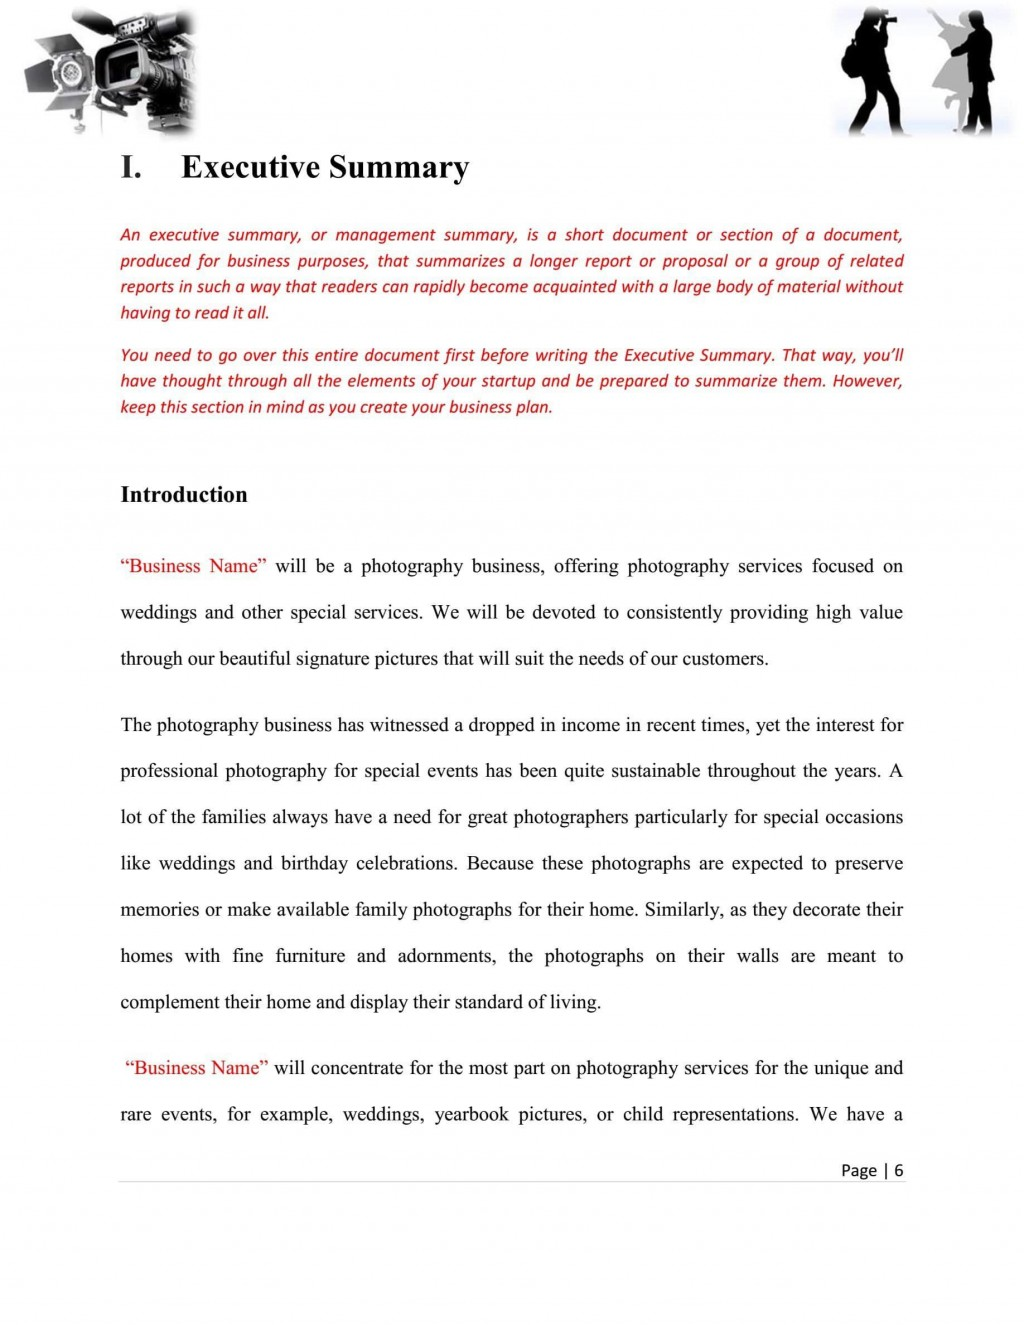 008 Fascinating Photography Busines Plan Template Free Highest Clarity  Sample Doc DownloadLarge